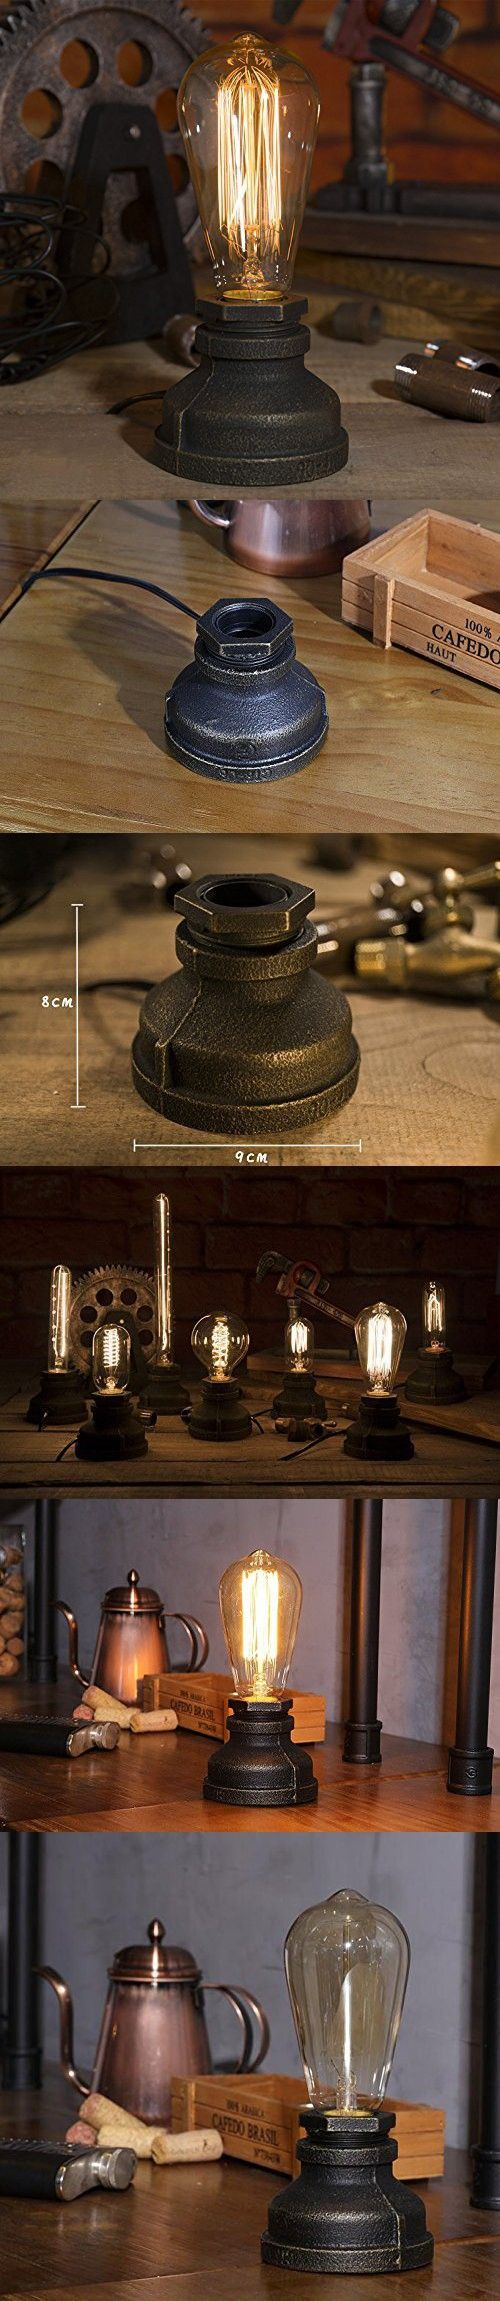 Injuicy Lighting Loft Vintage Retro Industrial Wrought Iron Metal Steampunk Water Pipe Table Lights Base Antique E27 Edison Piping Desk Accent Lamps for Bedroom Bedside Living Rooms Cafe Bar Decor